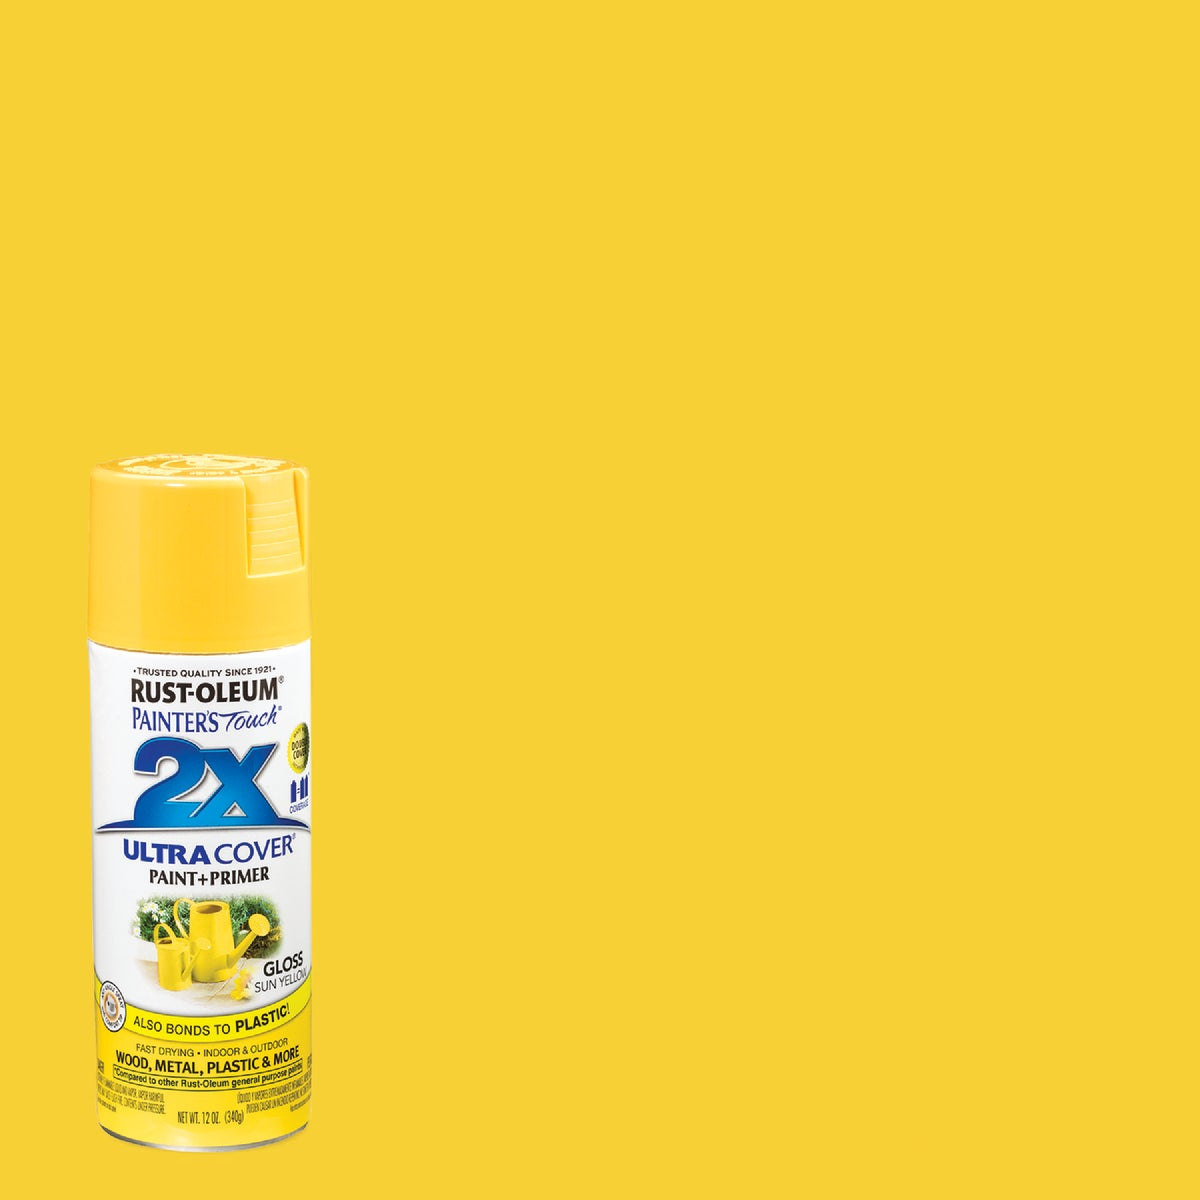 SUN YELLOW SPRAY PAINT - 249092 by Rustoleum